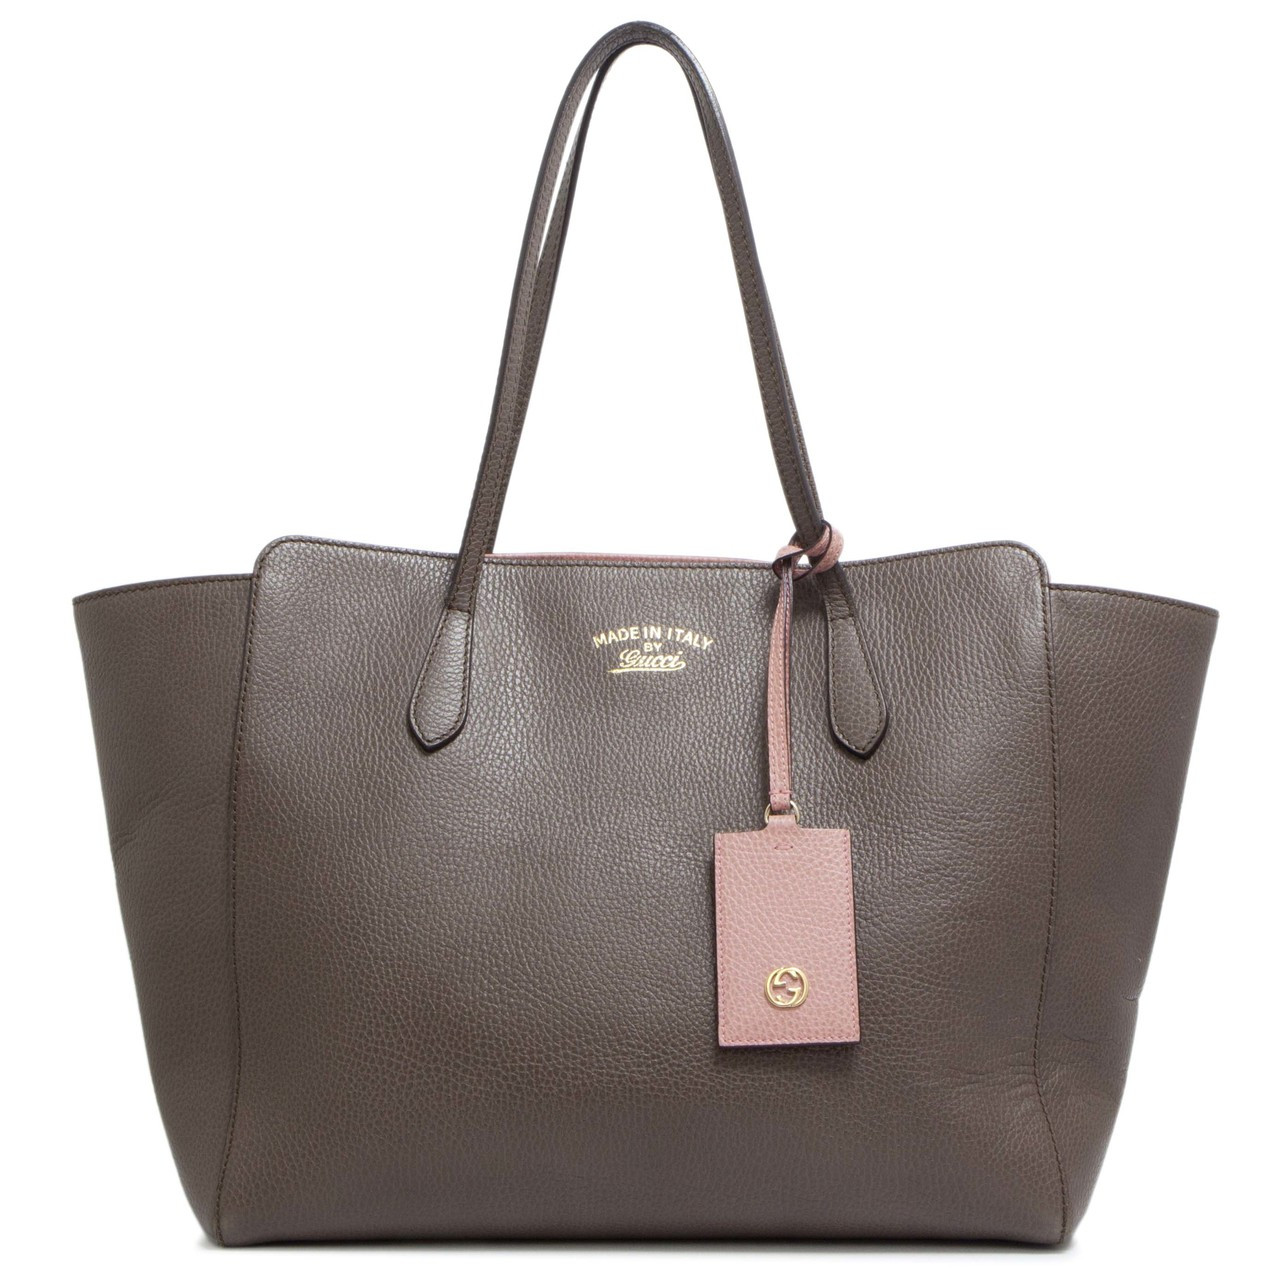 a026f1bfd348 Gucci Taupe Pink Pebbled Calfskin Medium Swing Tote - modaselle